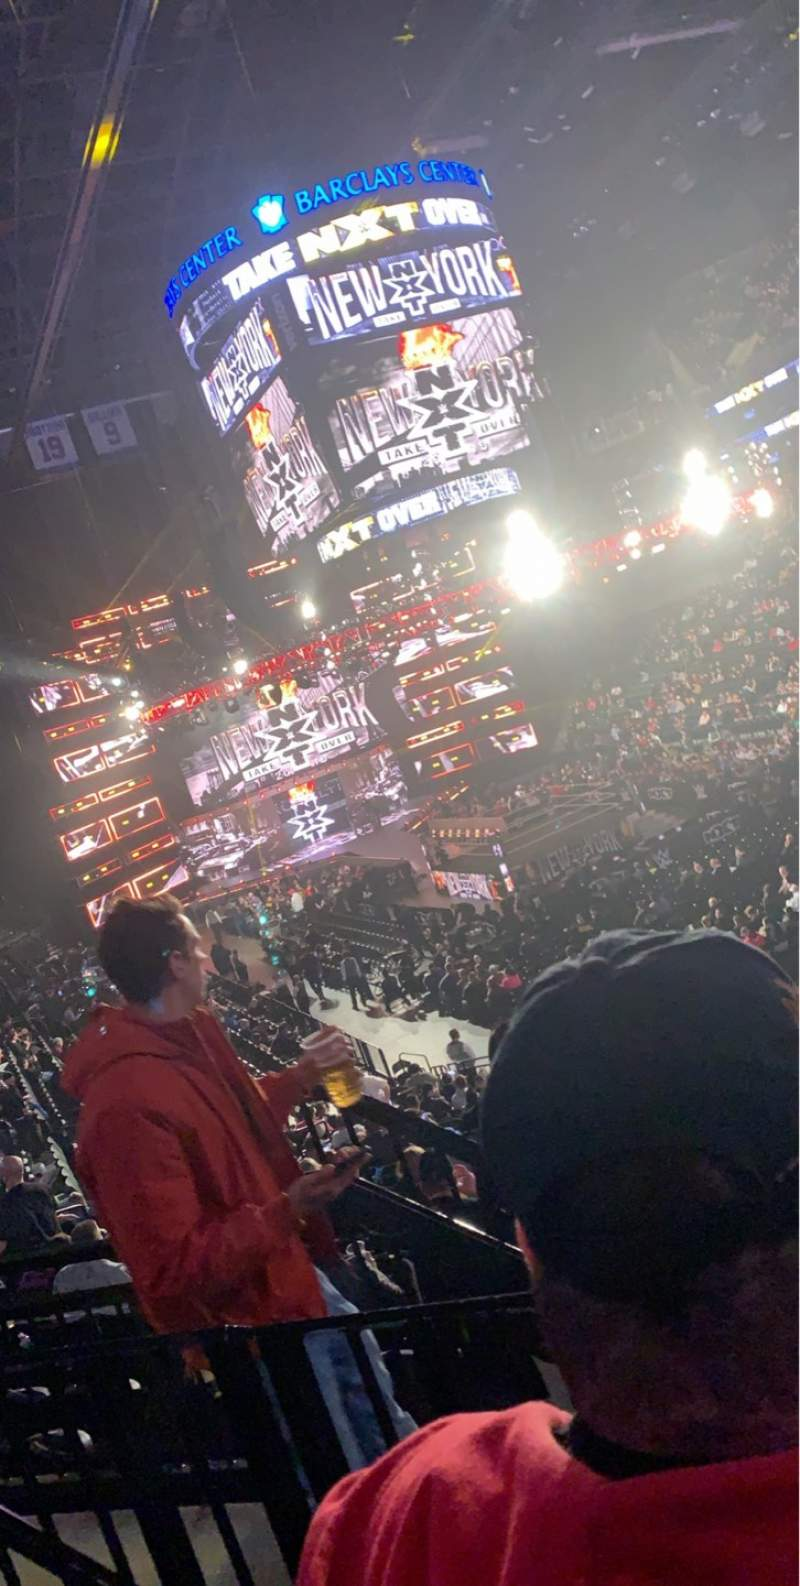 Seating view for Barclays Center Section 188 Row 5 Seat 5